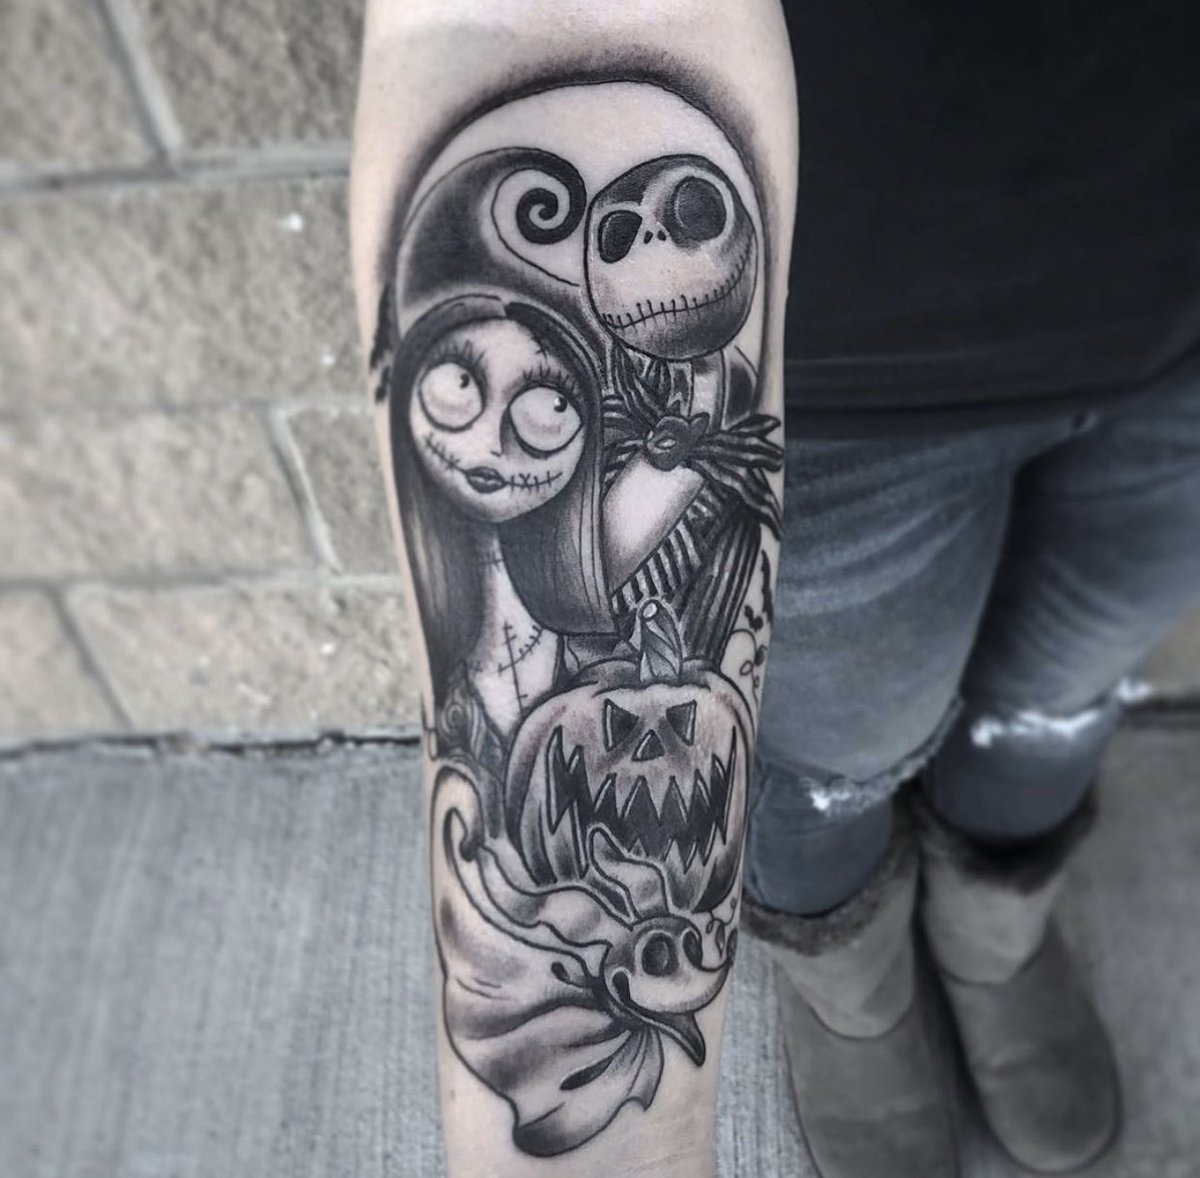 Nightmare Before Christmas piece! Love love love this one!   Don't forget to follow prettyininktats on Instagram for more!  #tattoos #ink #nightmarebeforechristmas #timburton #girlswhotattoo #prettyinink